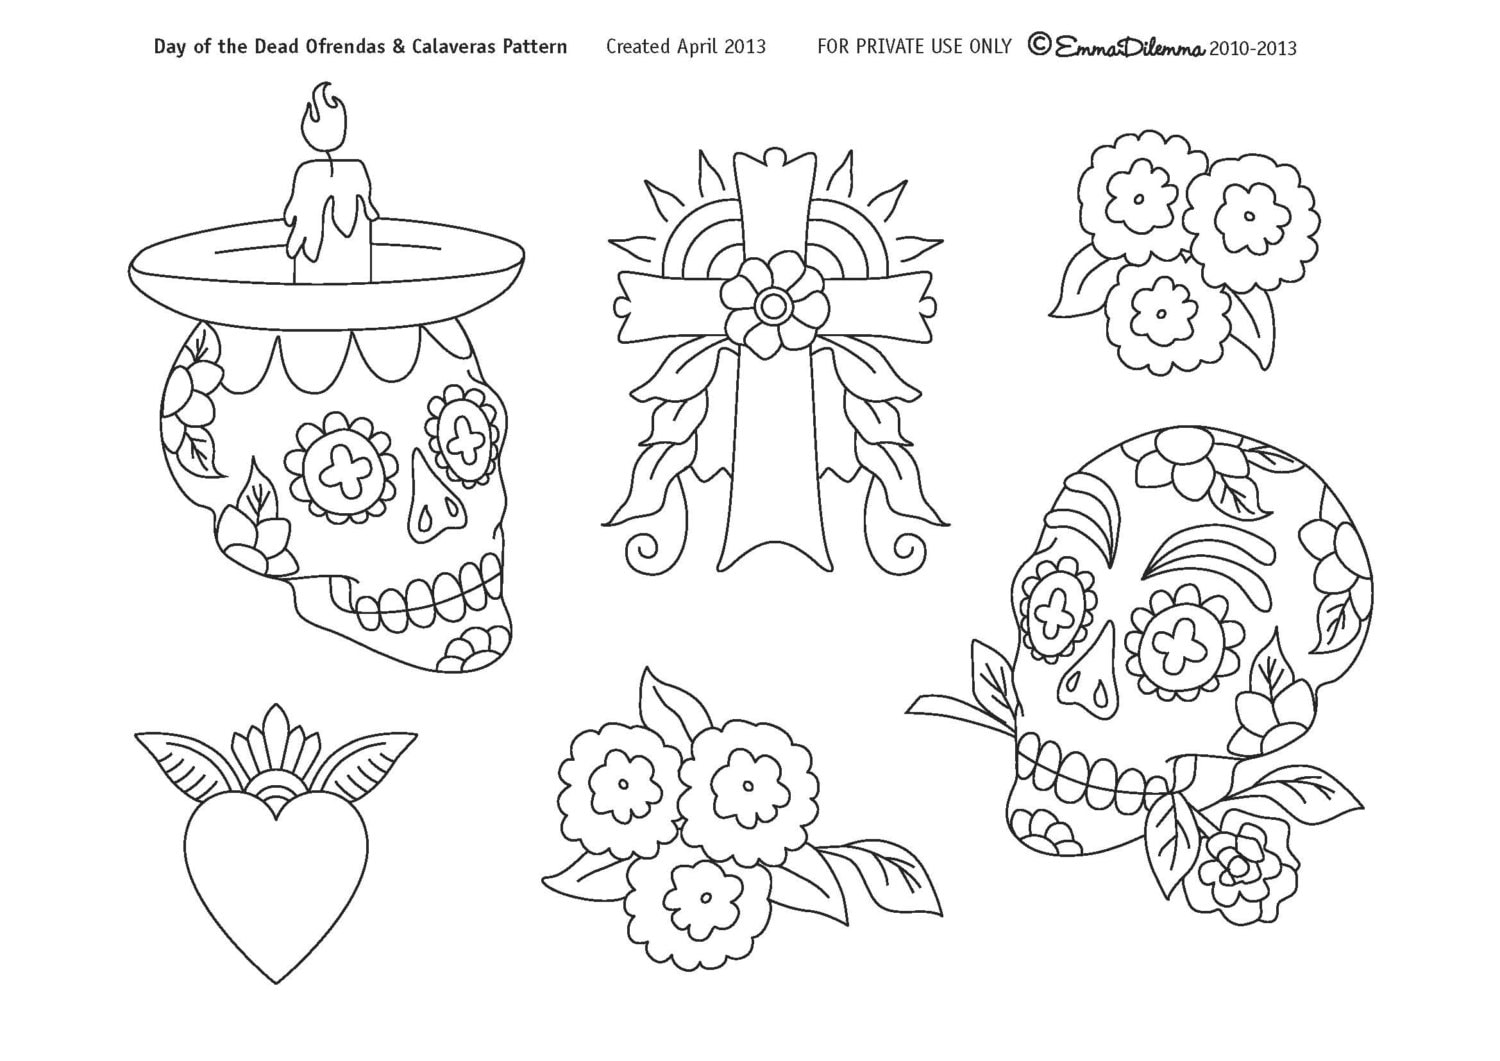 Day of the Dead Calaveras & Ofrendas Pattern pdf file for Hand